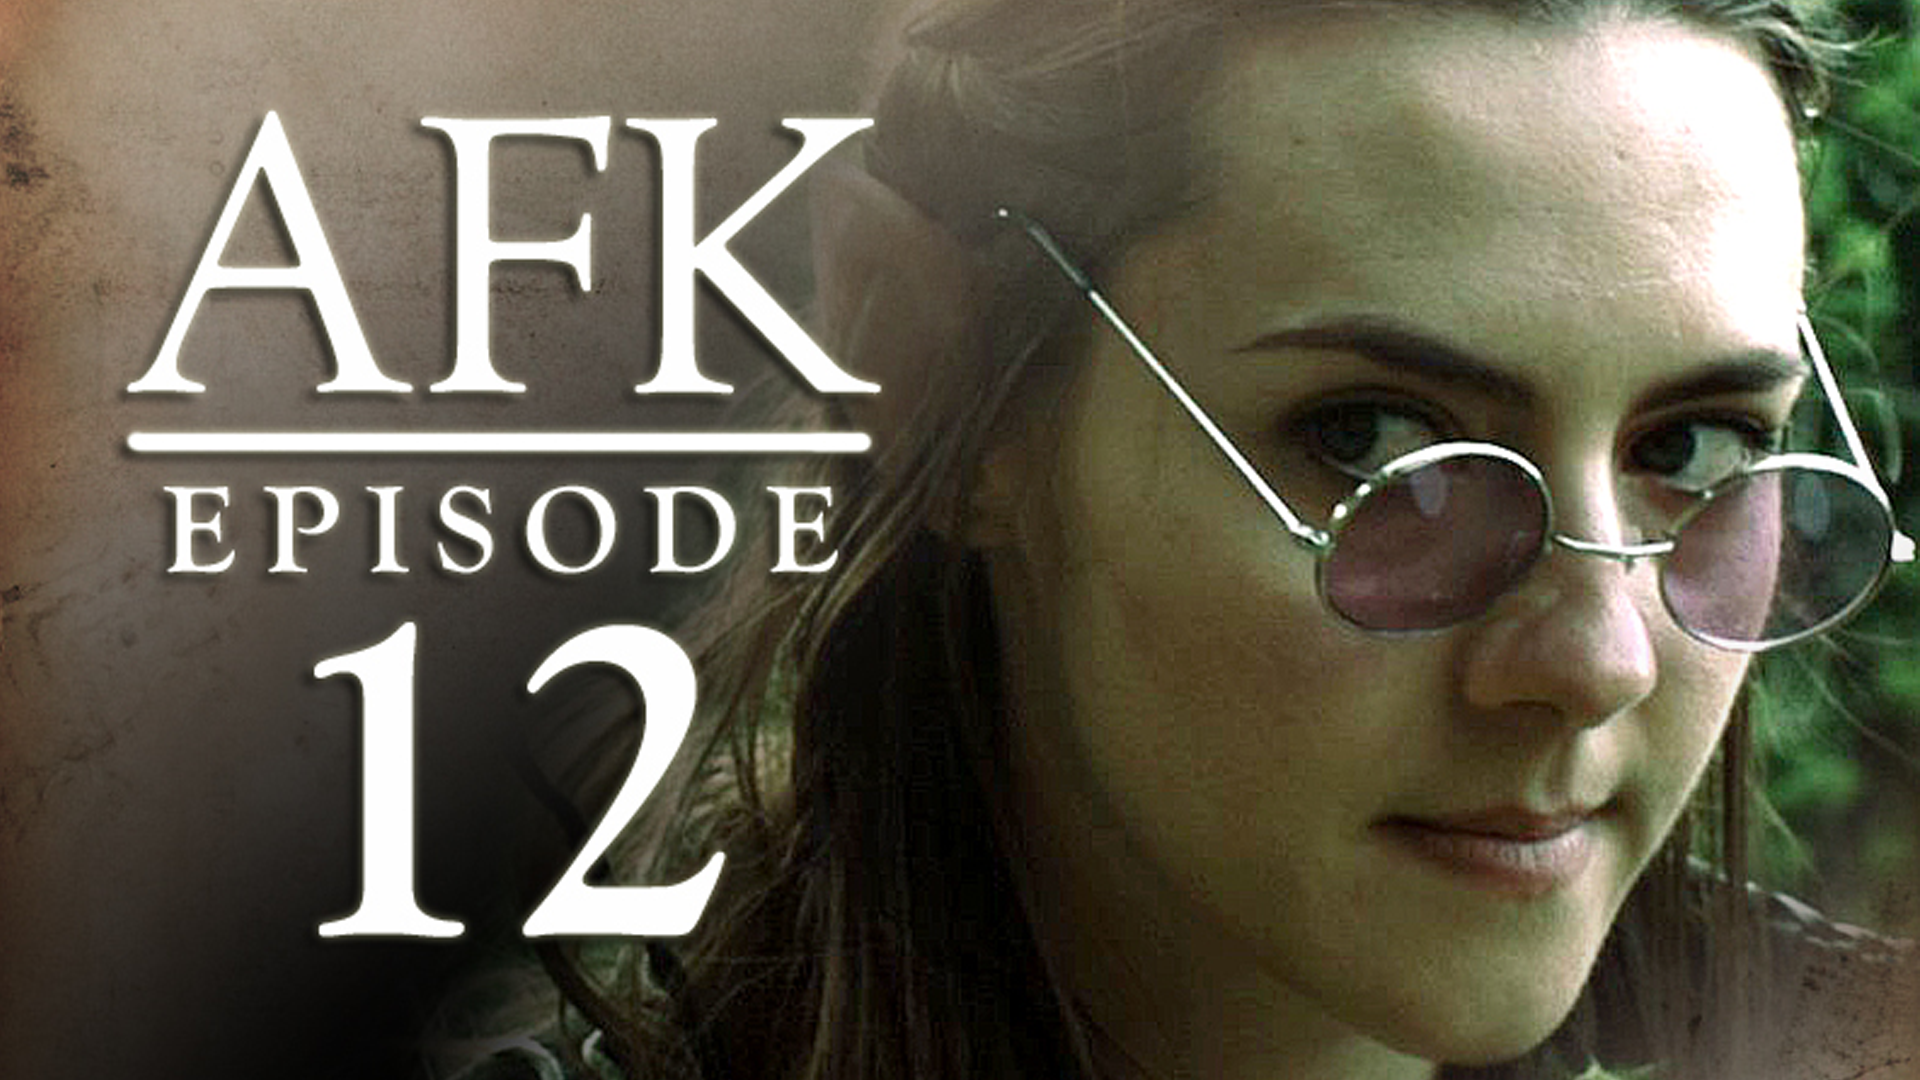 AFK Season 1 Episode 12 Zerg